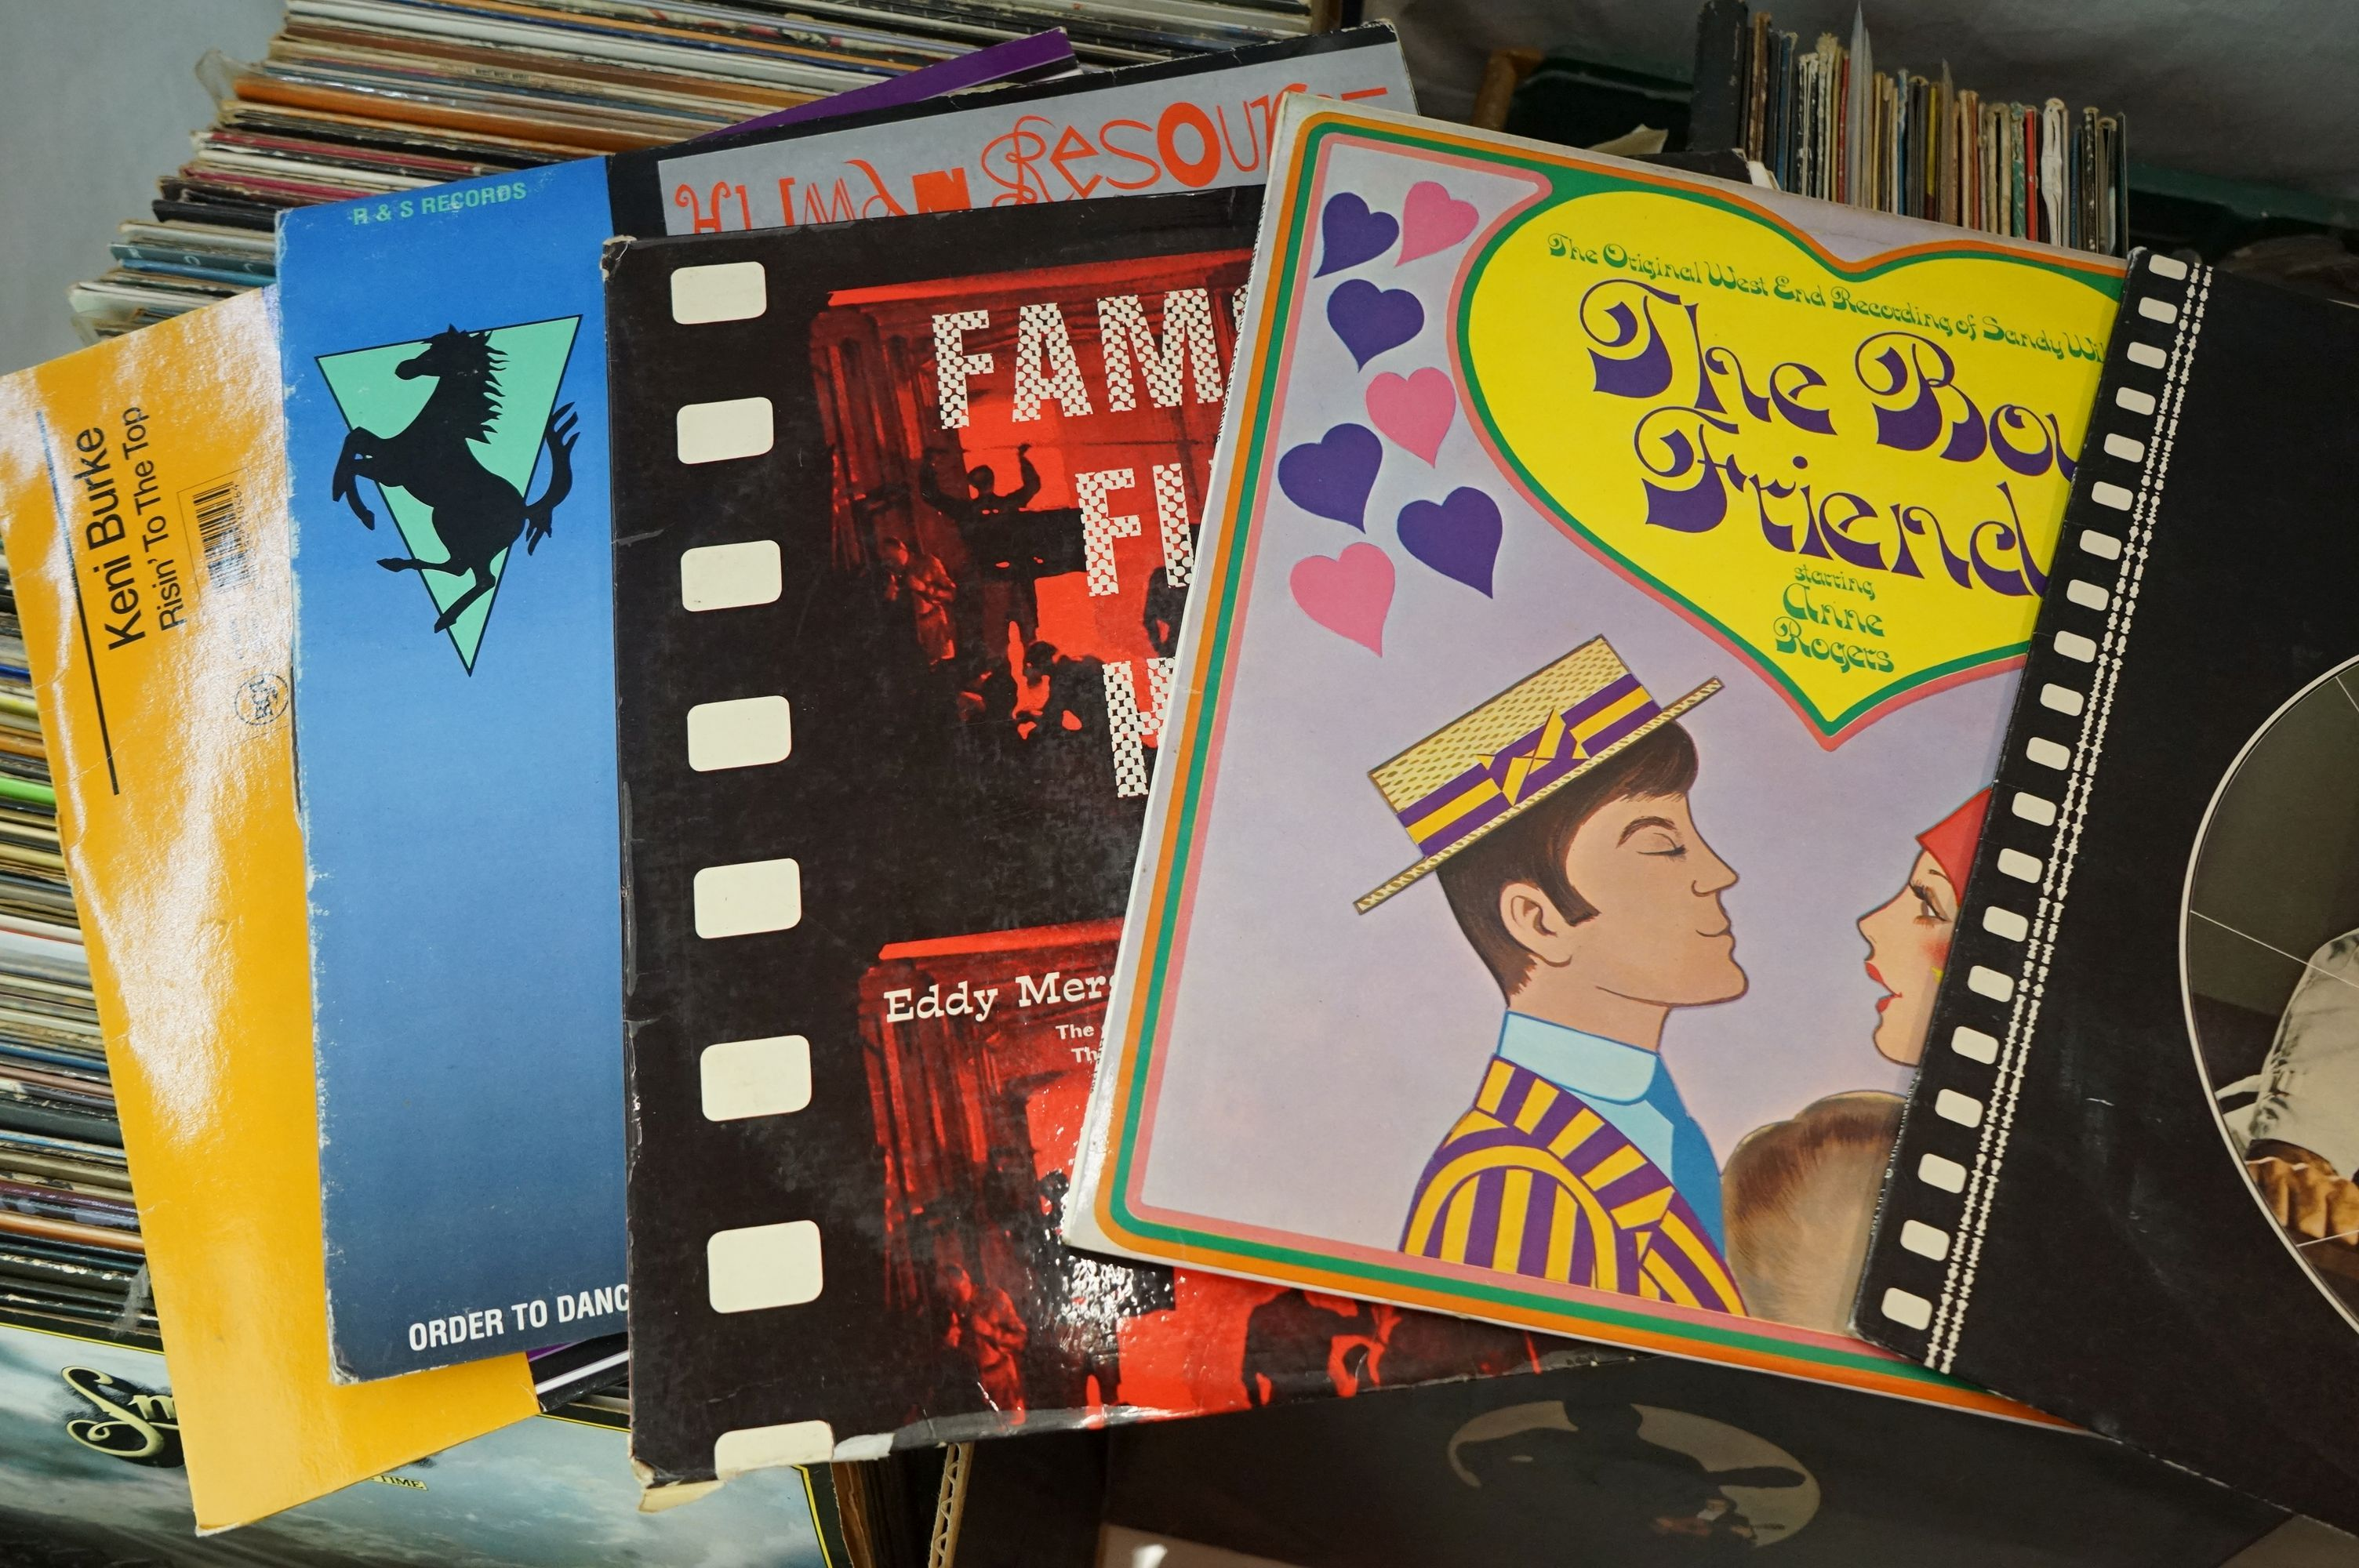 Vinyl - Large collection of LPs spanning the genres and decades (four boxes) - Image 2 of 8